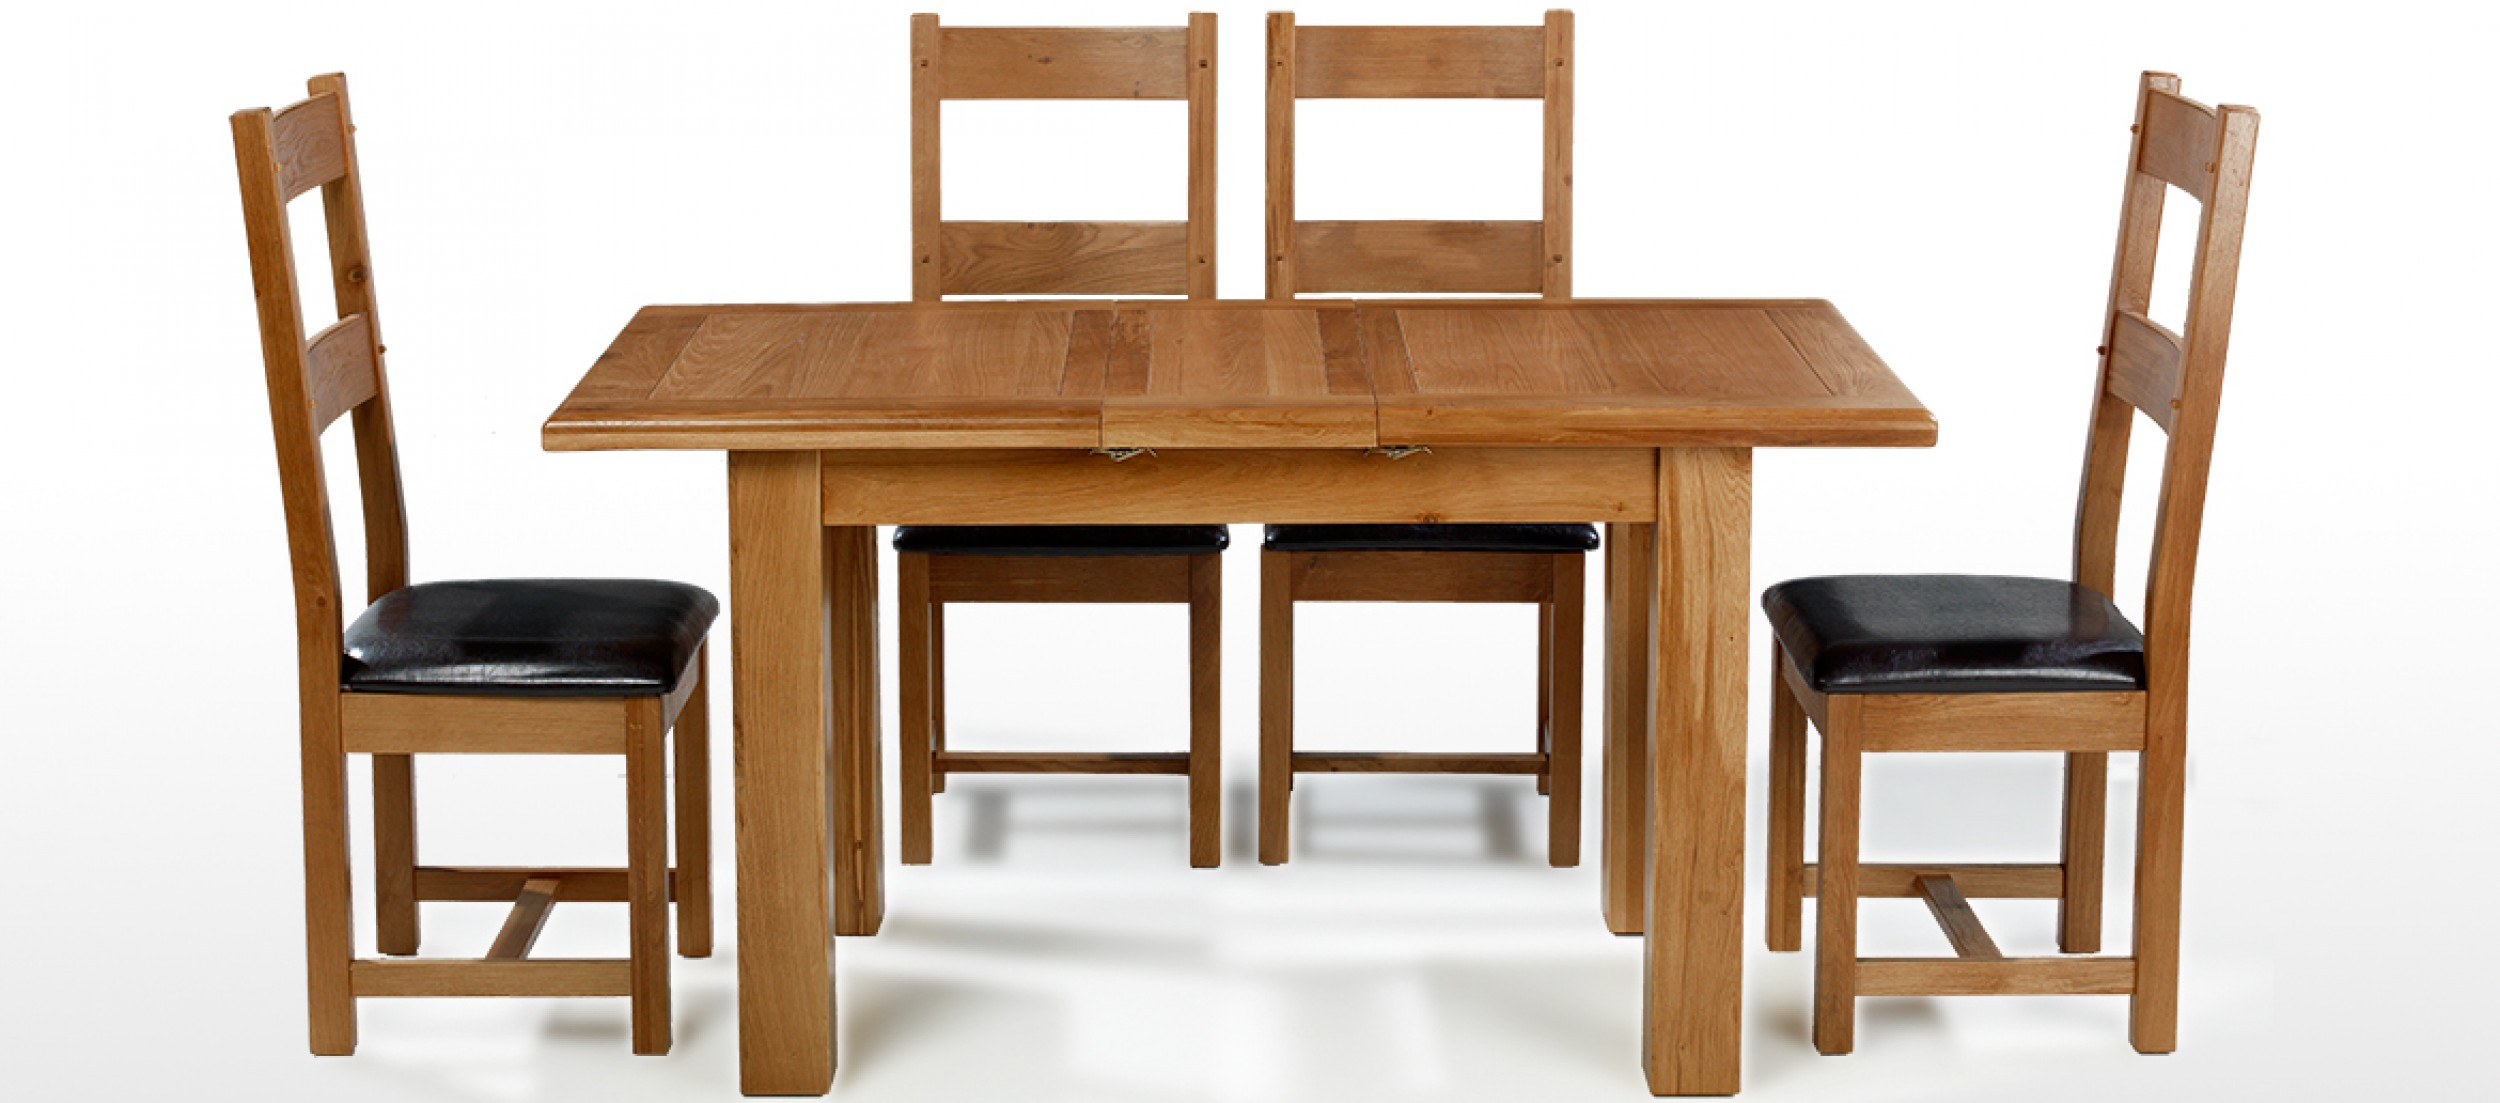 Barham Oak 120-150 cm Extending Dining Table and 4 Chairs ...